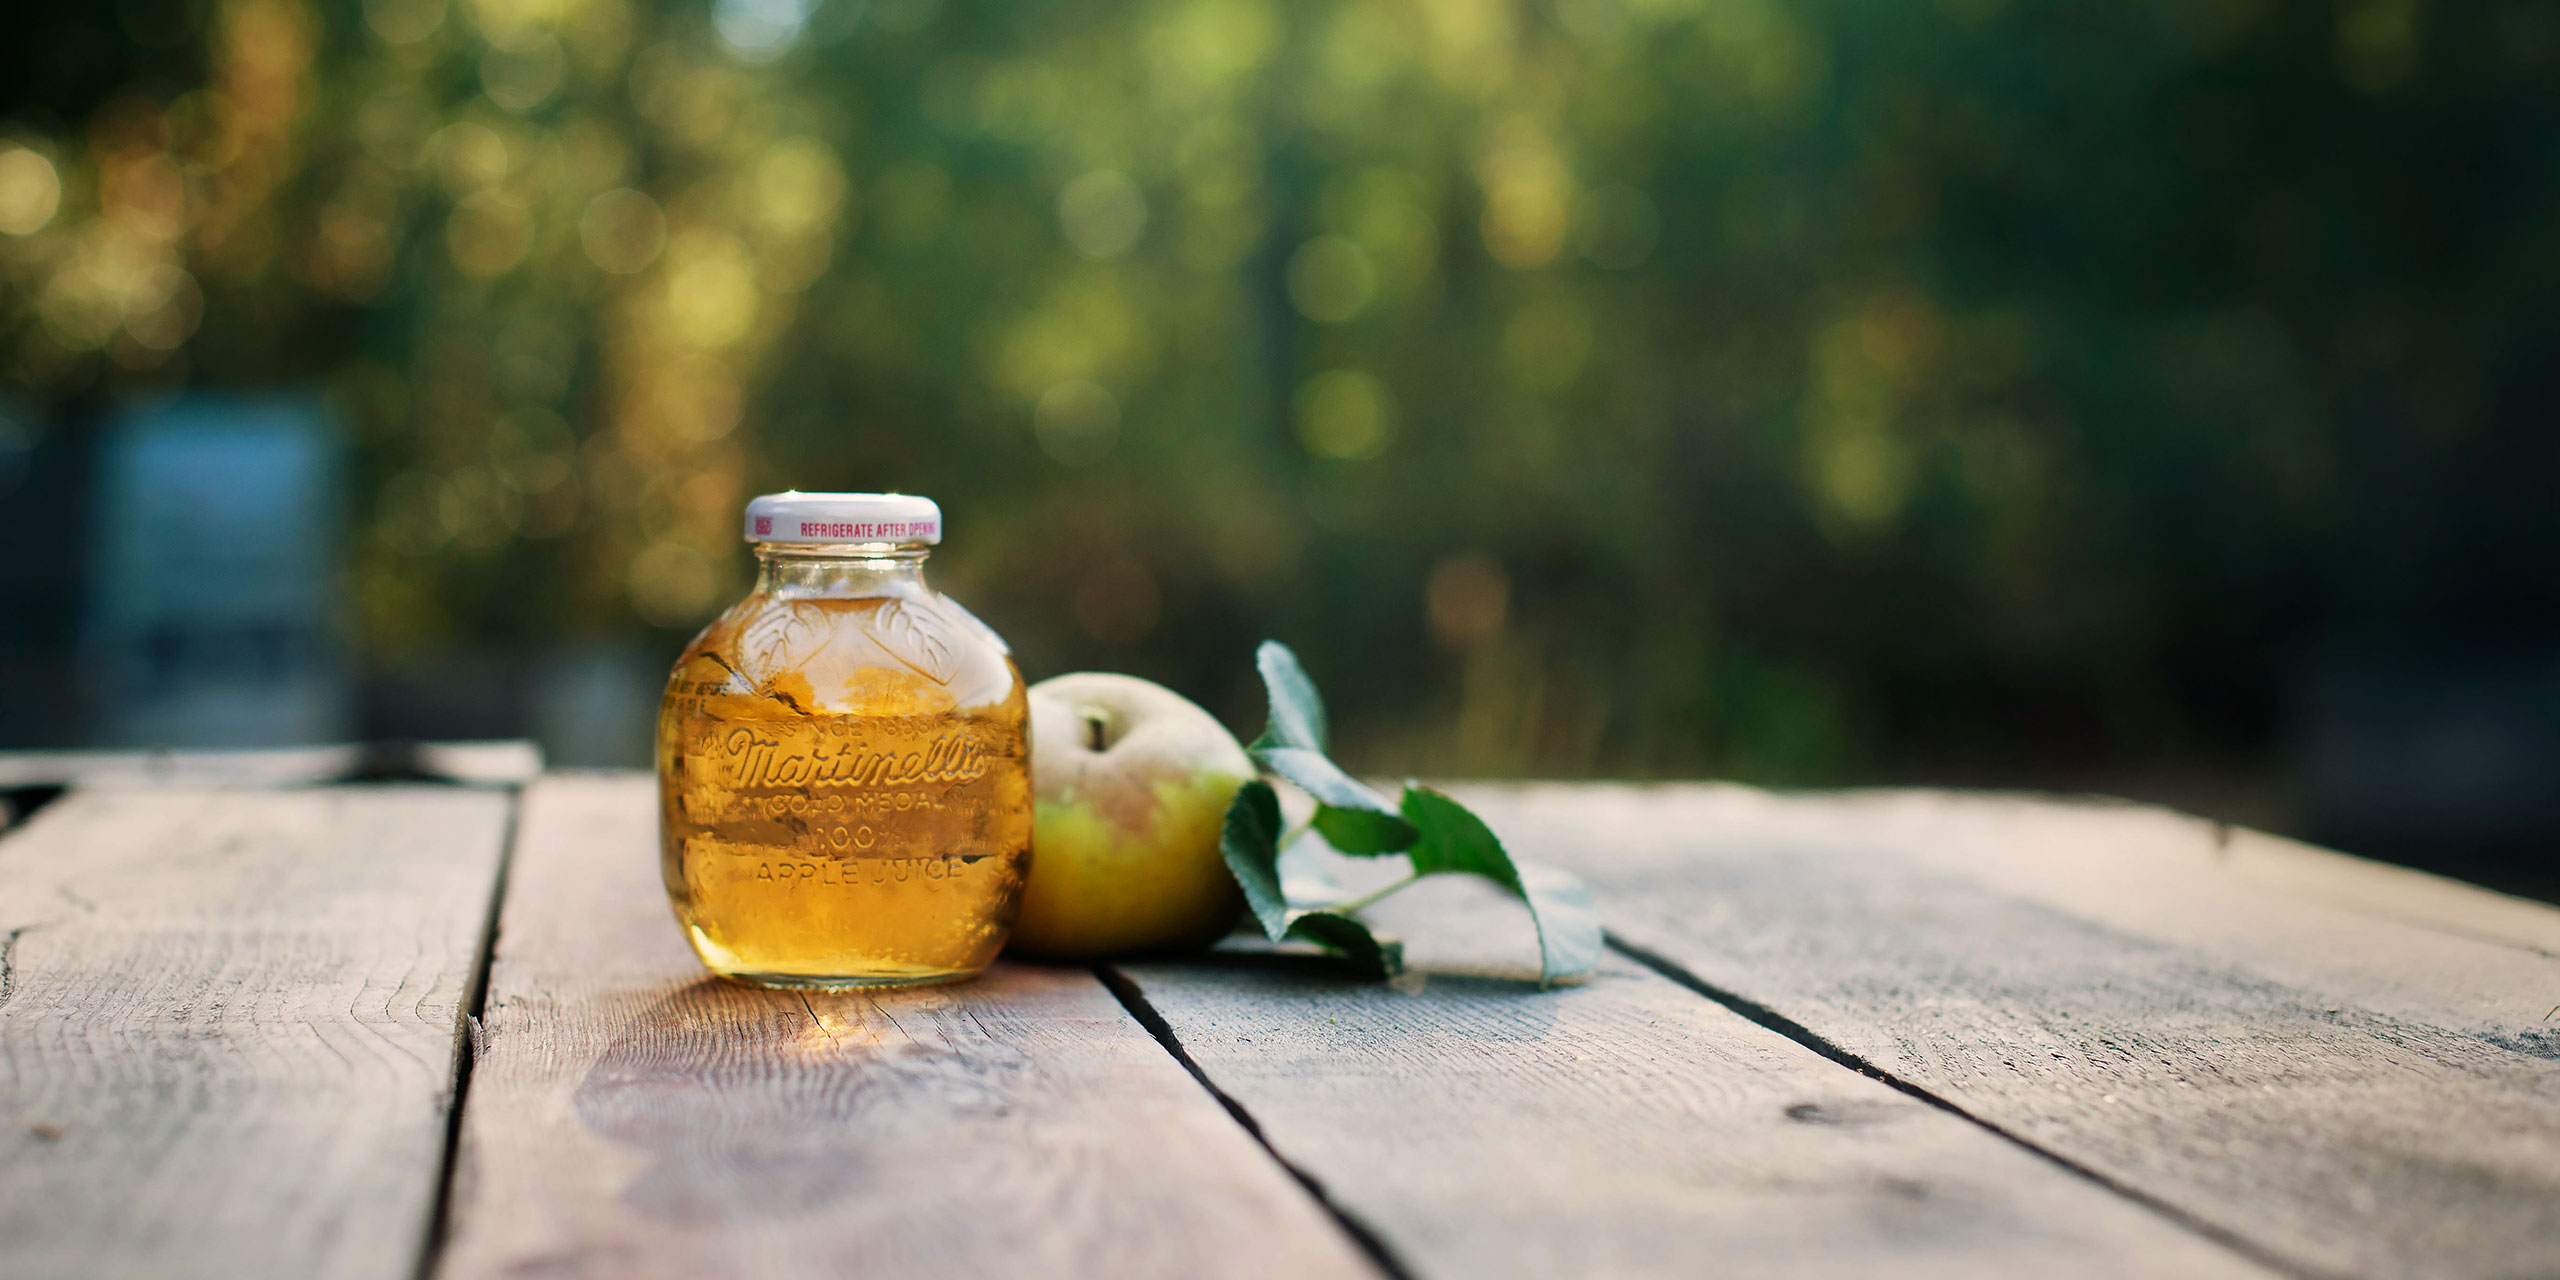 100 Apple Juice 10oz Glass Bottle Still Juices S